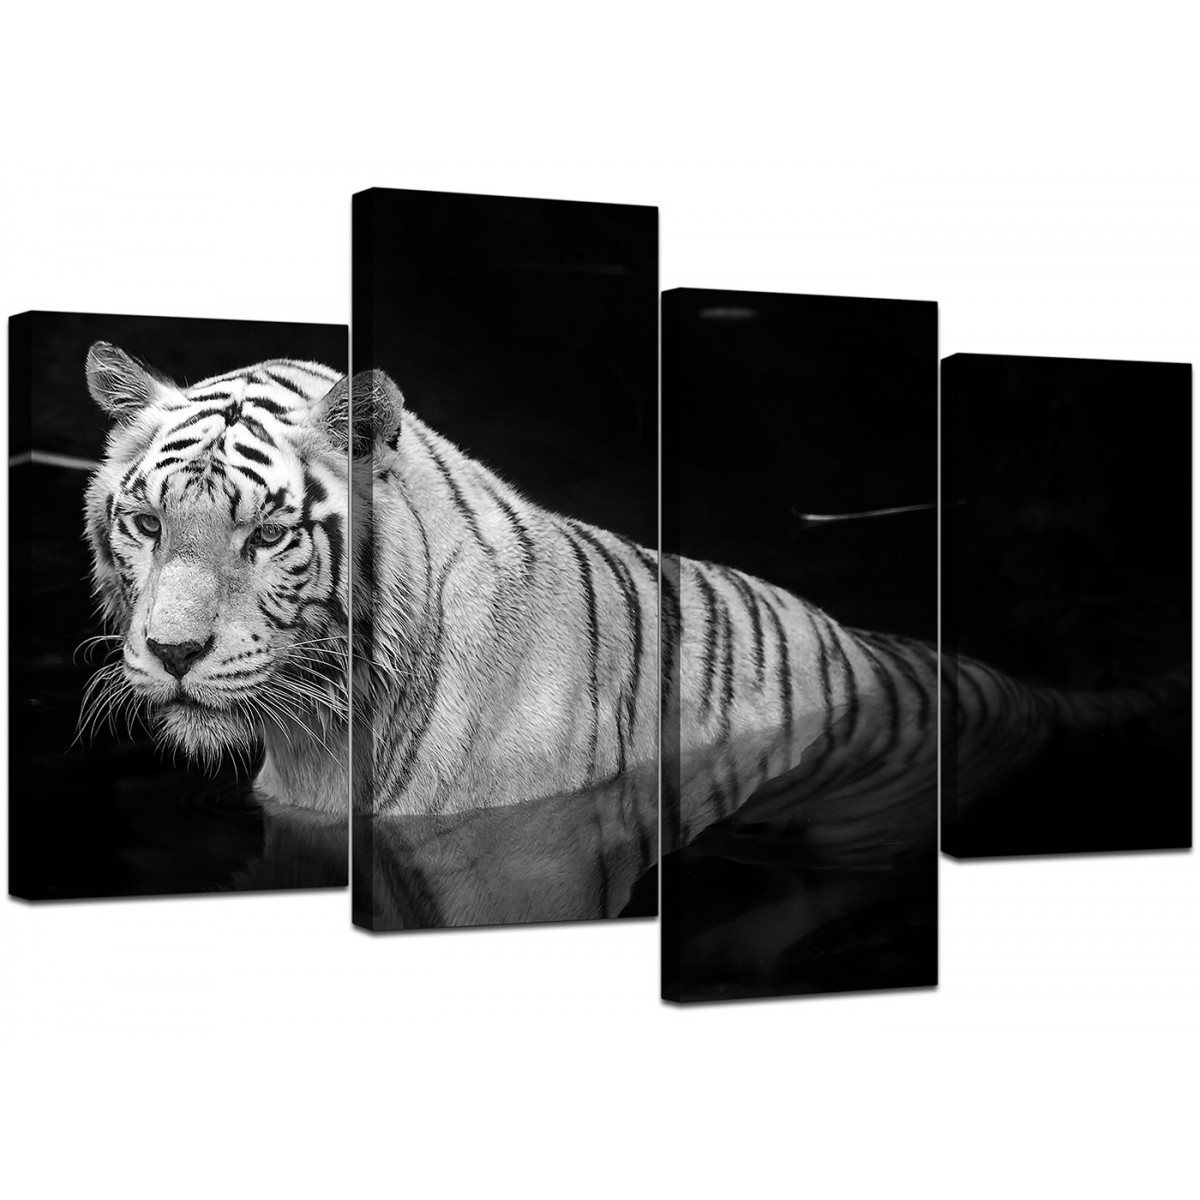 Black And White Tiger Canvas Wall Art For Bedroom